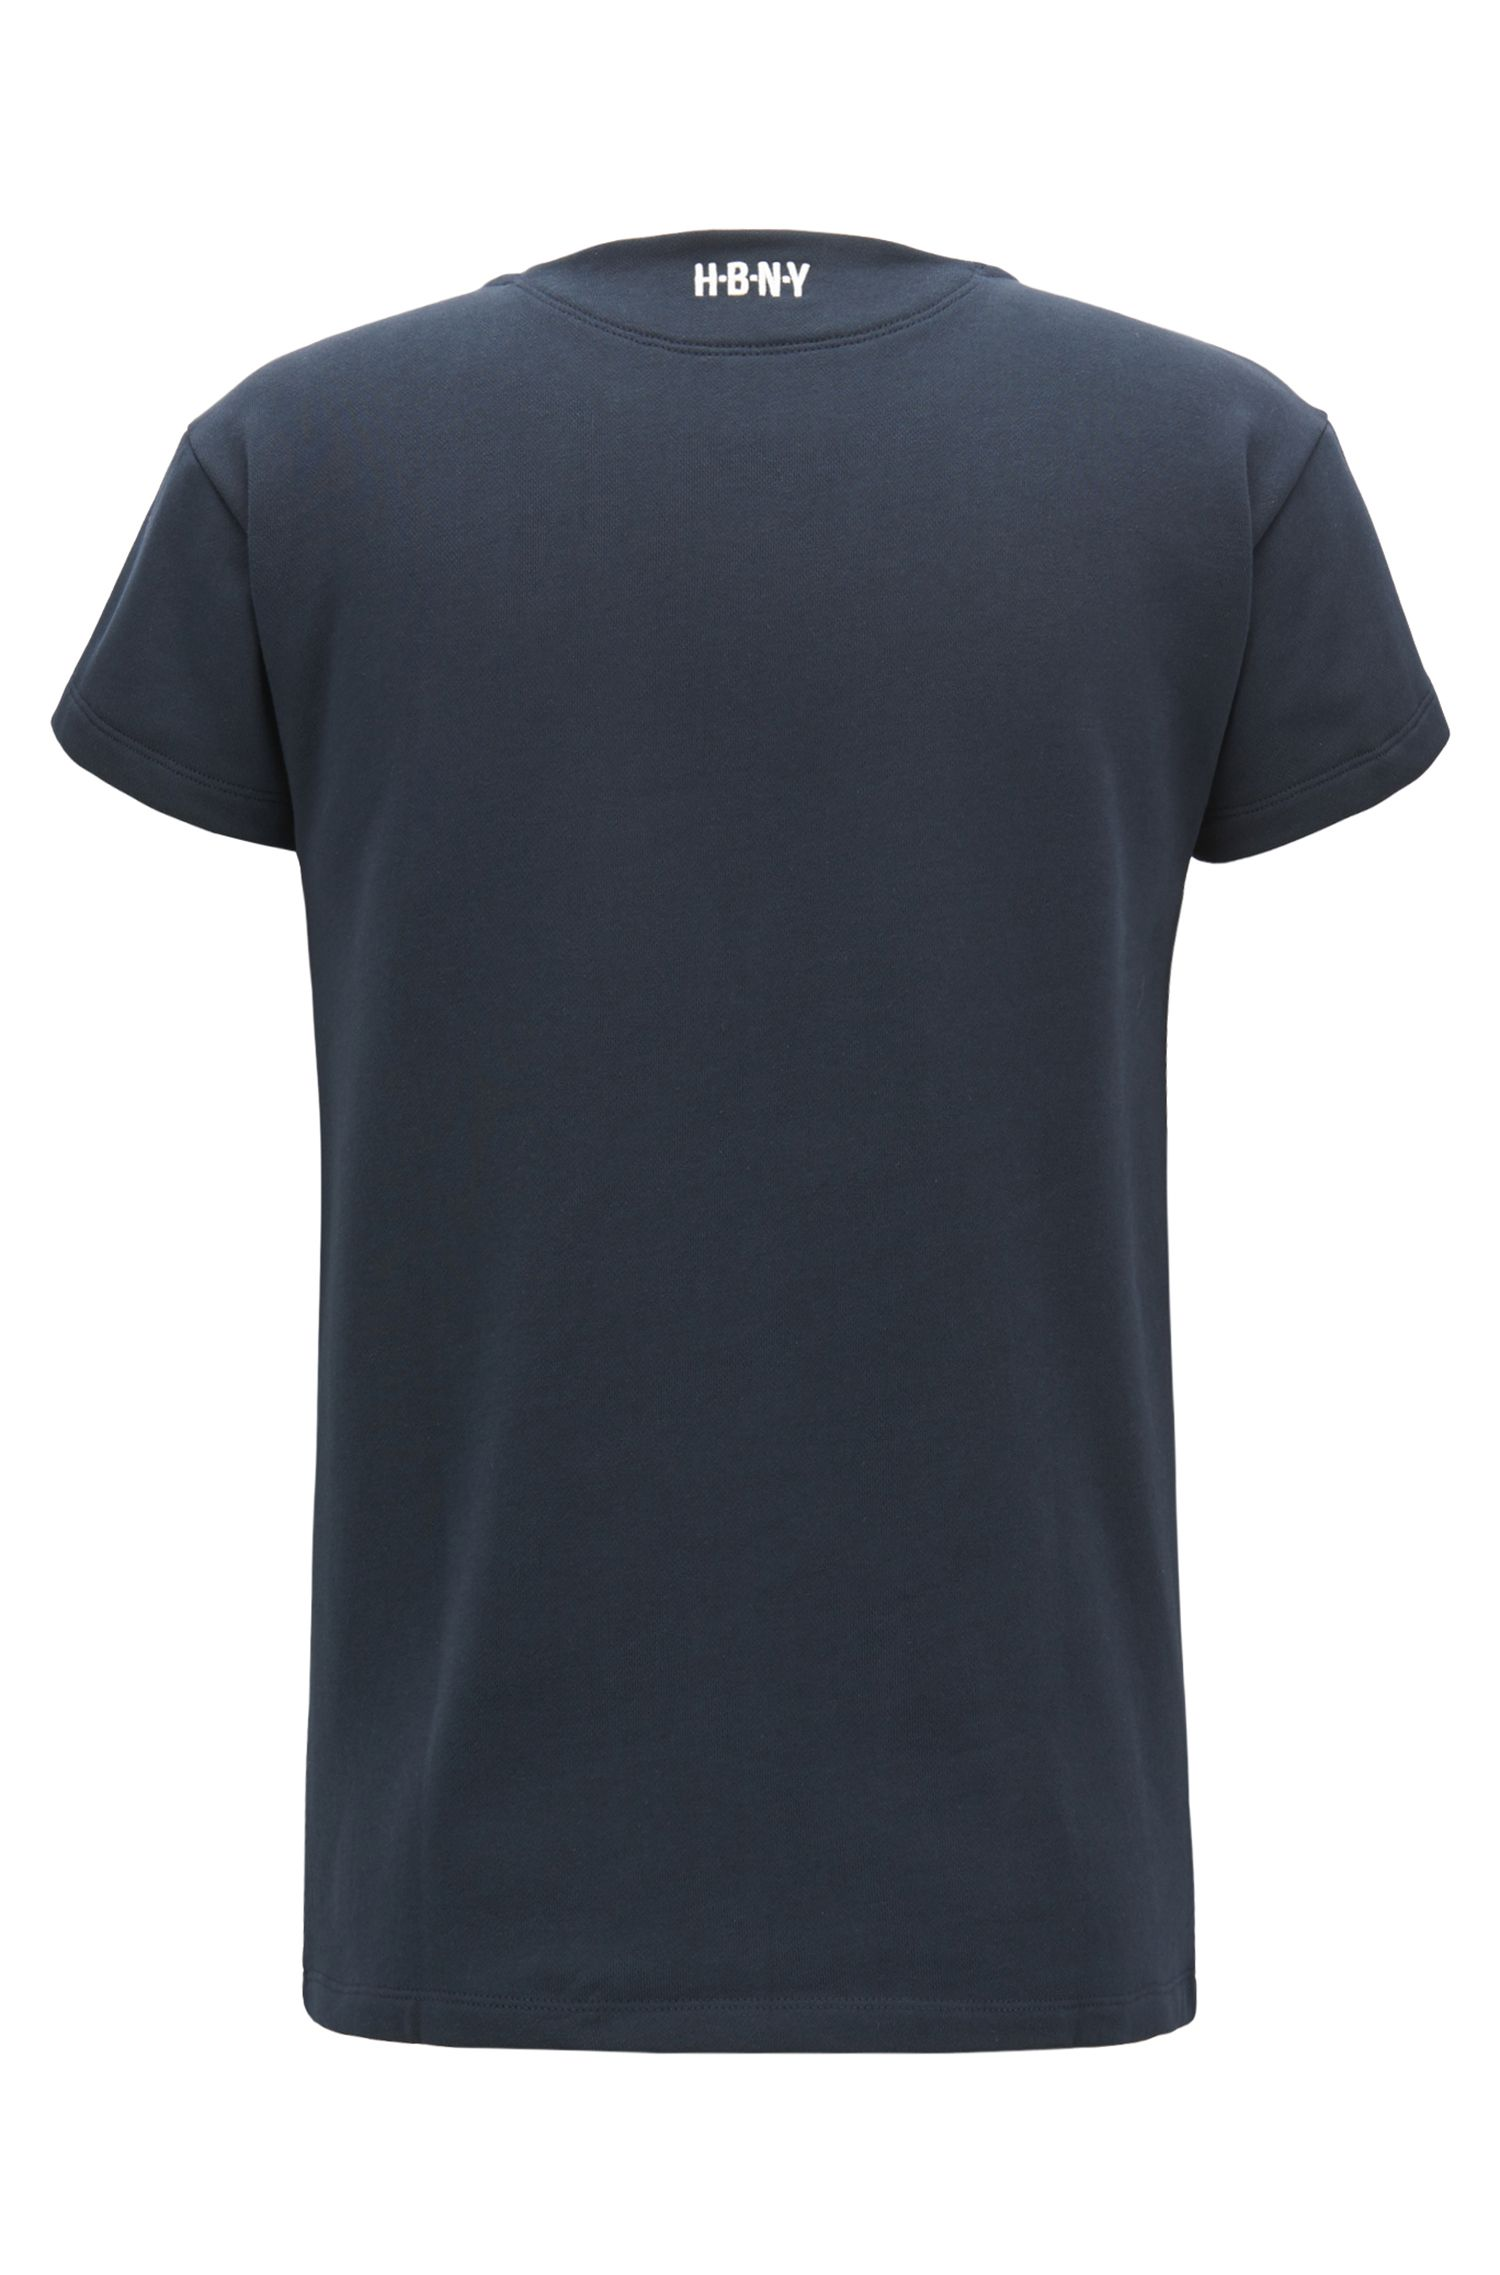 Printed T-shirt in ribbed cotton jersey